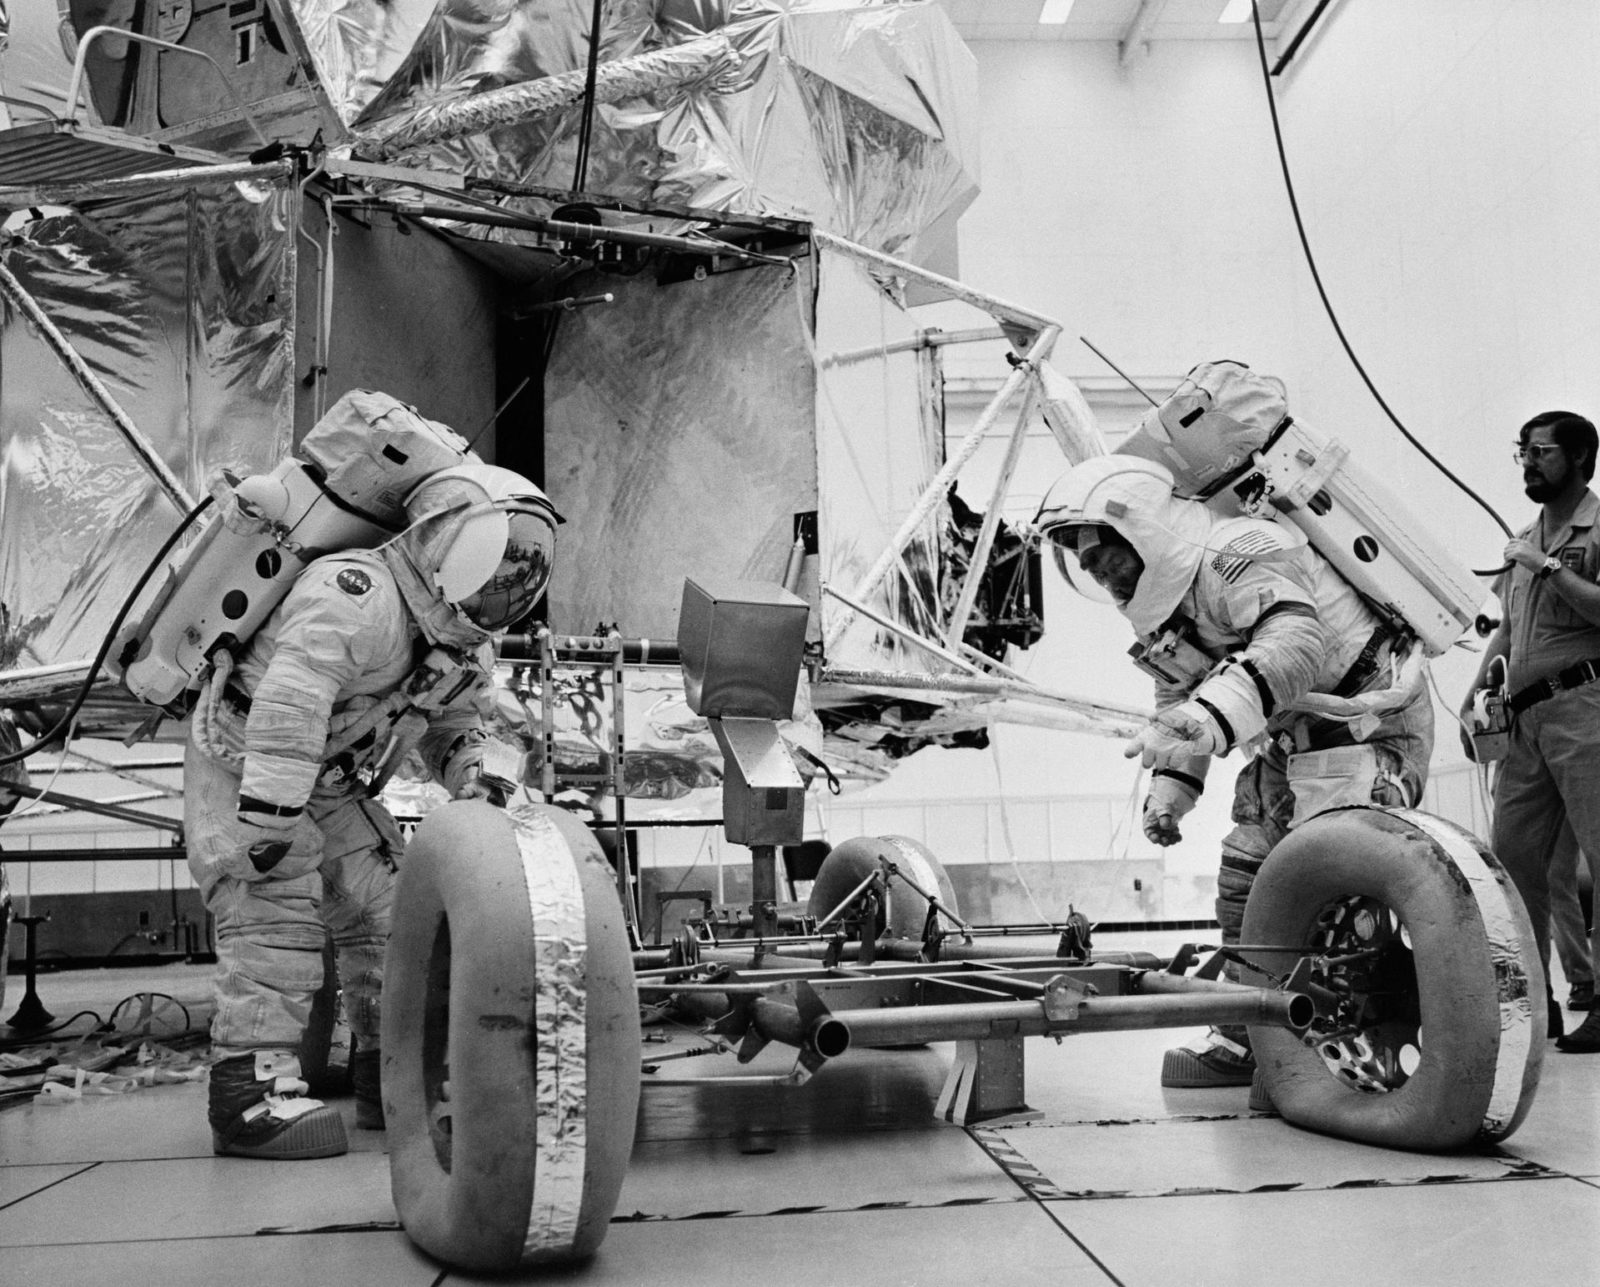 Apollo 17 Astronauts during EVA training